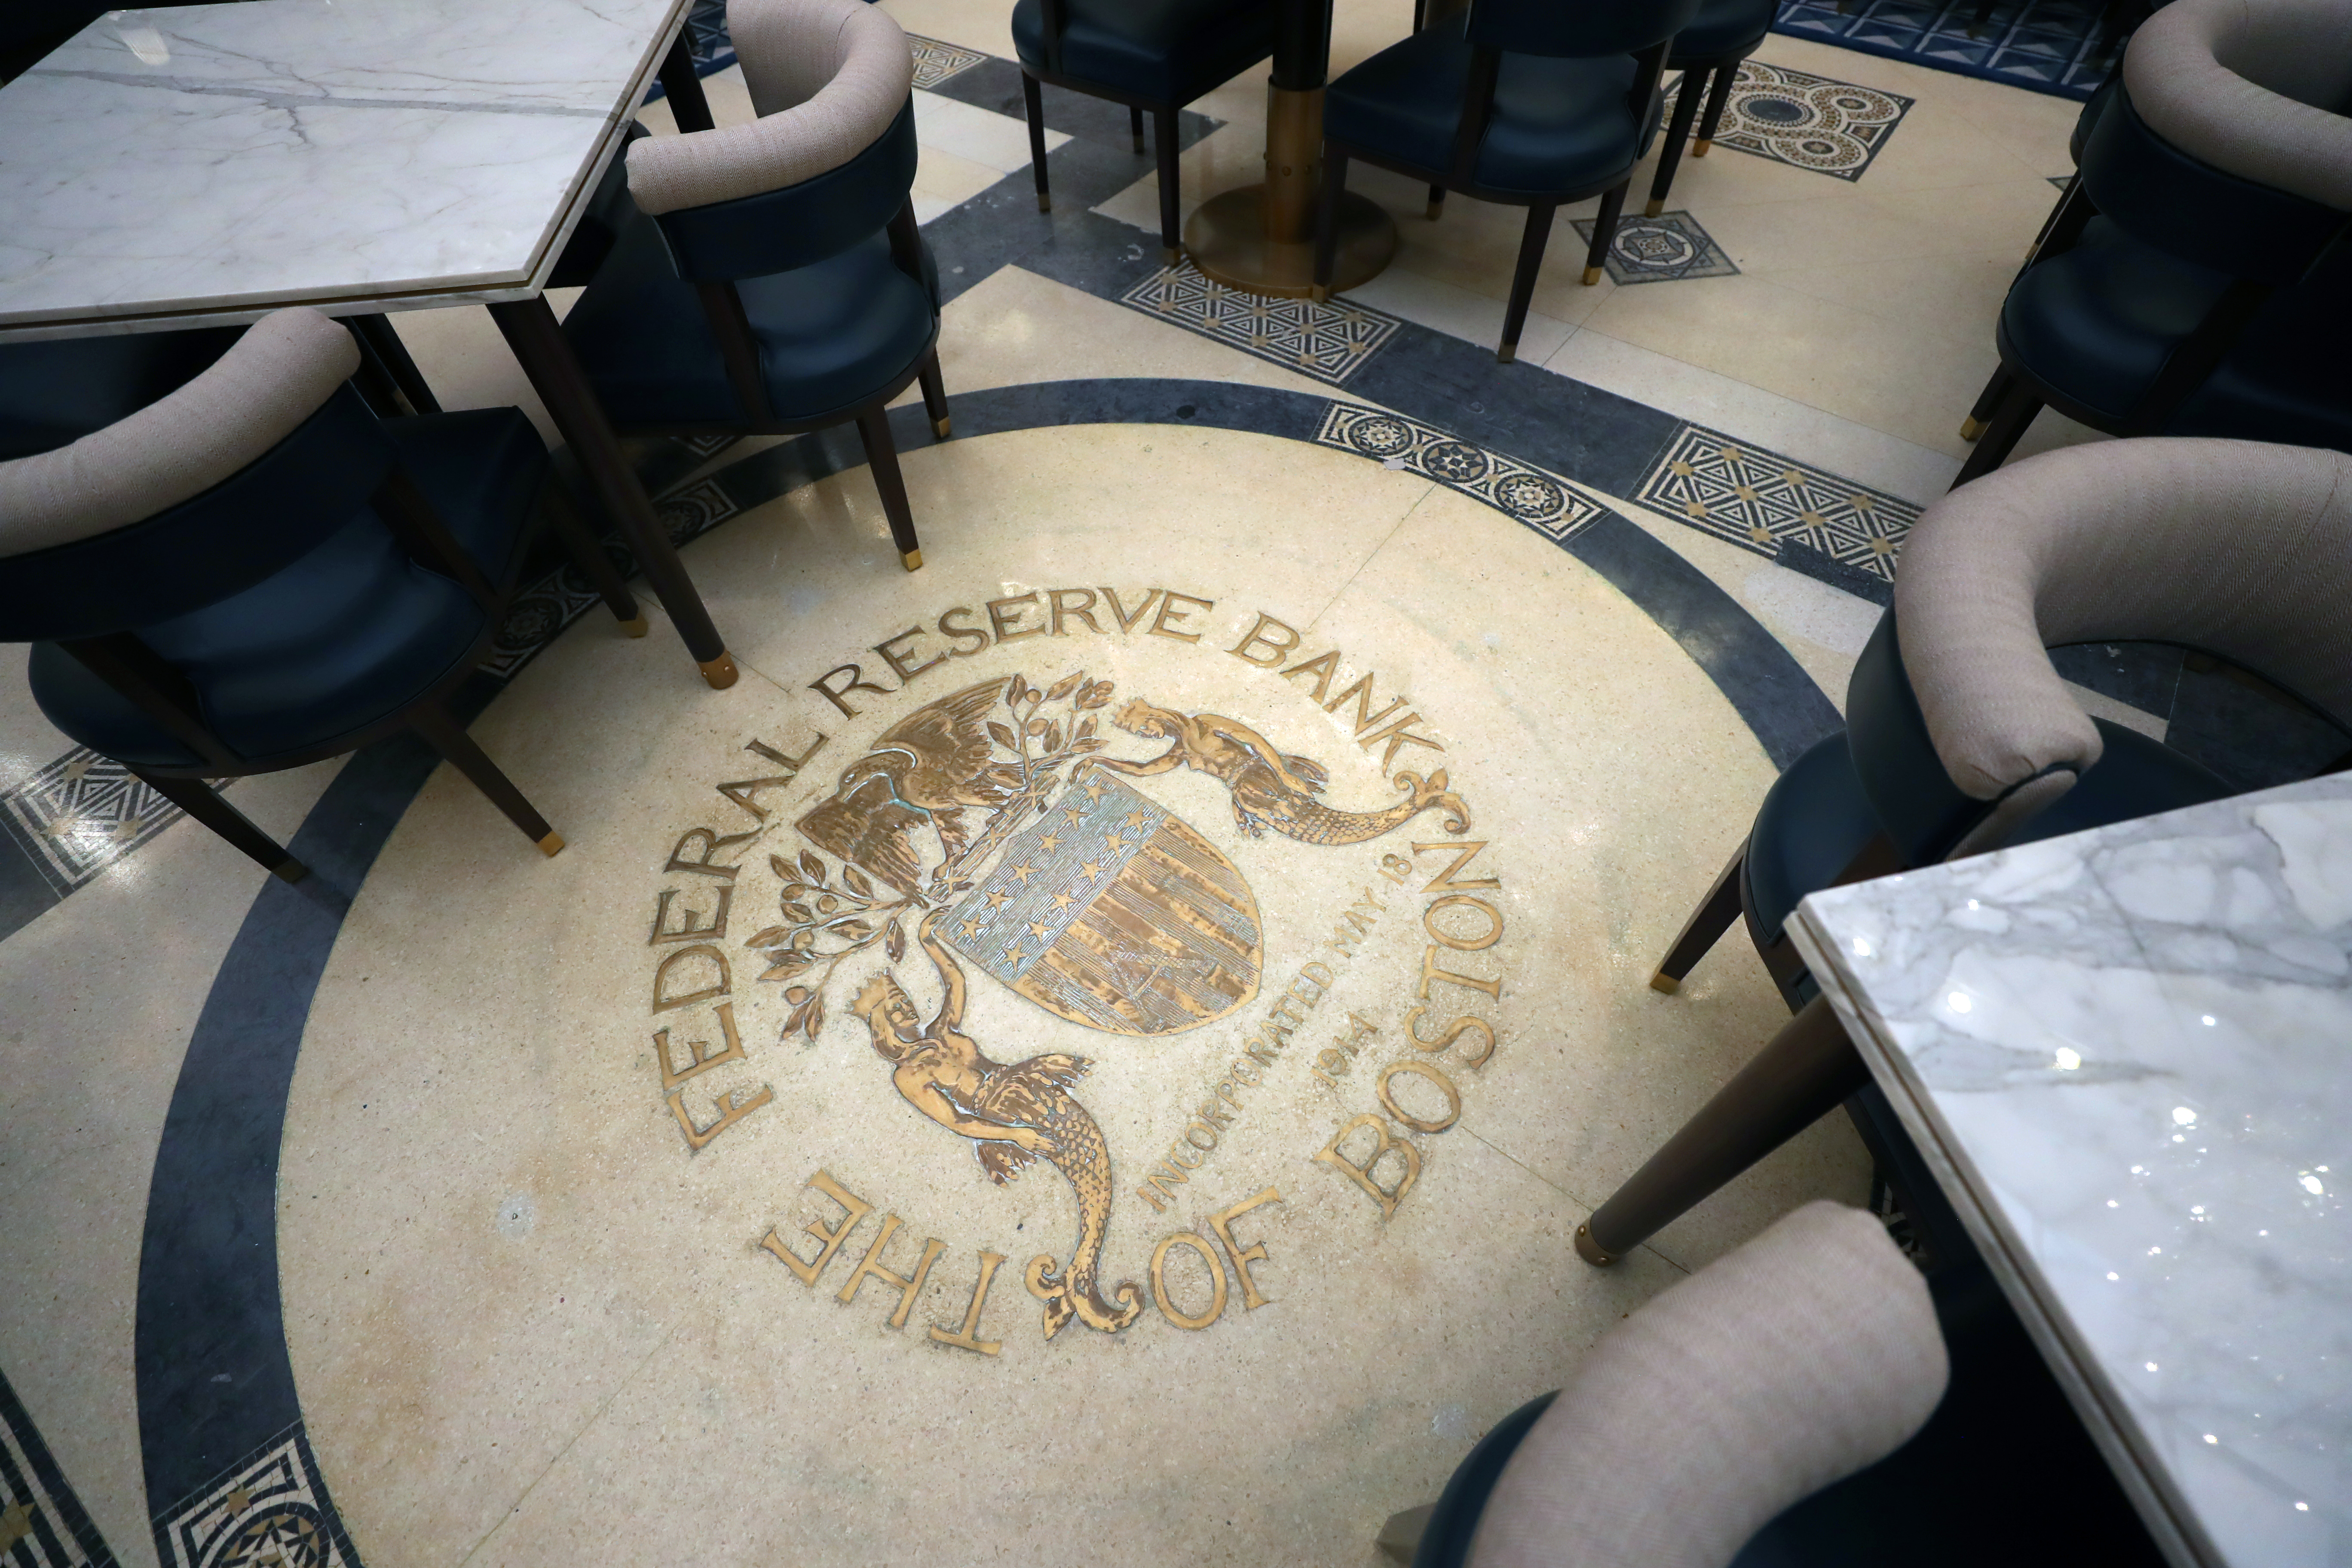 The emblem of the Federal Reserve Bank remains on the floor of the hotel's restaurant, Grana.